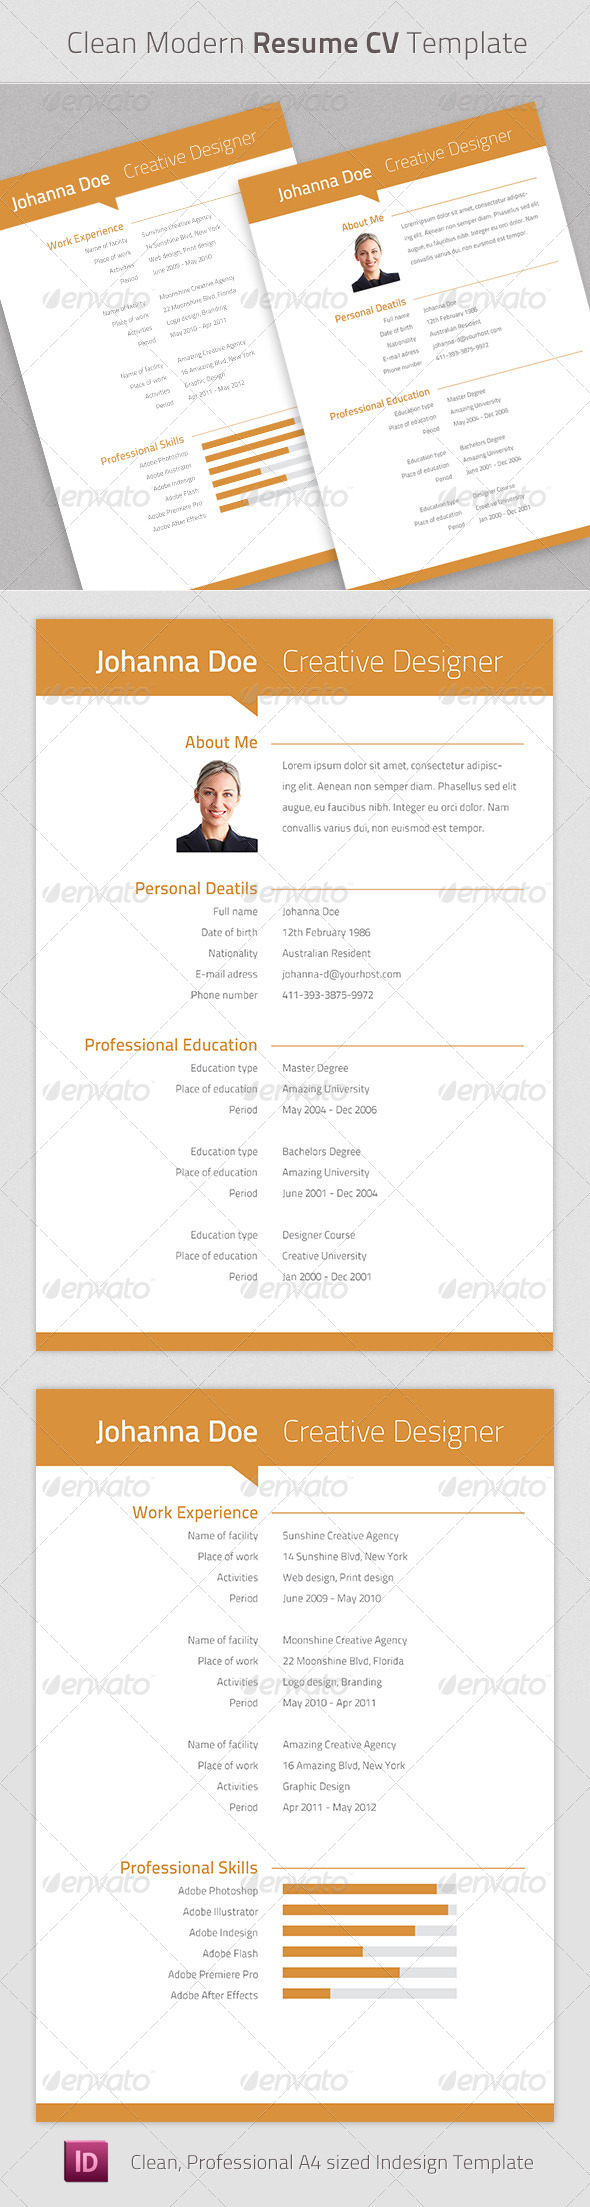 Clean Modern Resume Cv Indesign Template - Resumes Stationery